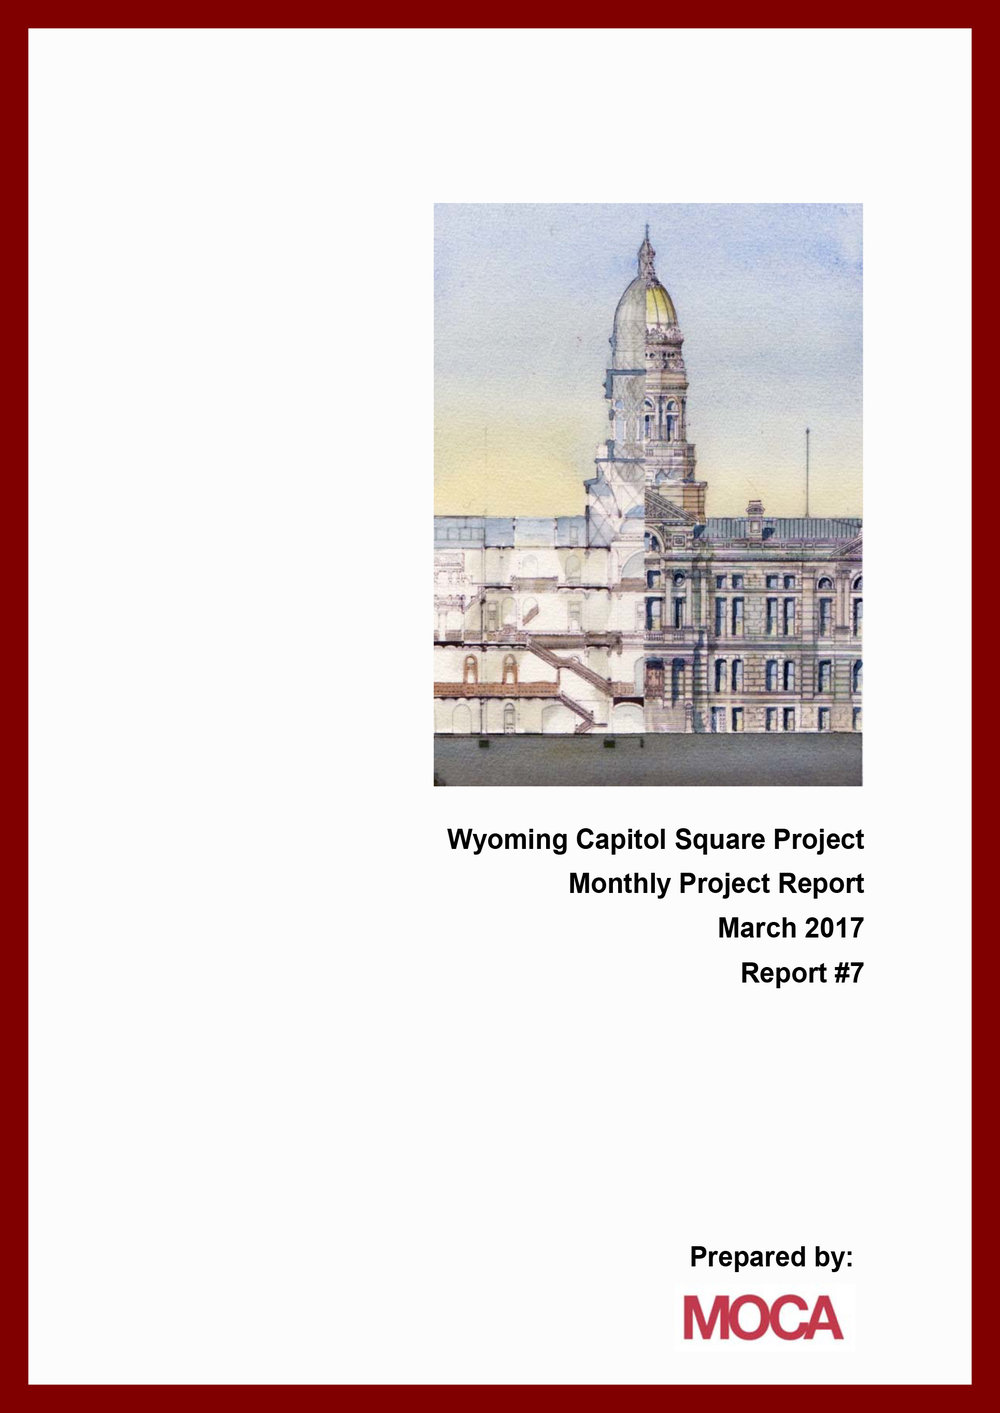 2017-0502-WyomingCapitolMonthlyReport-Final-7.jpg